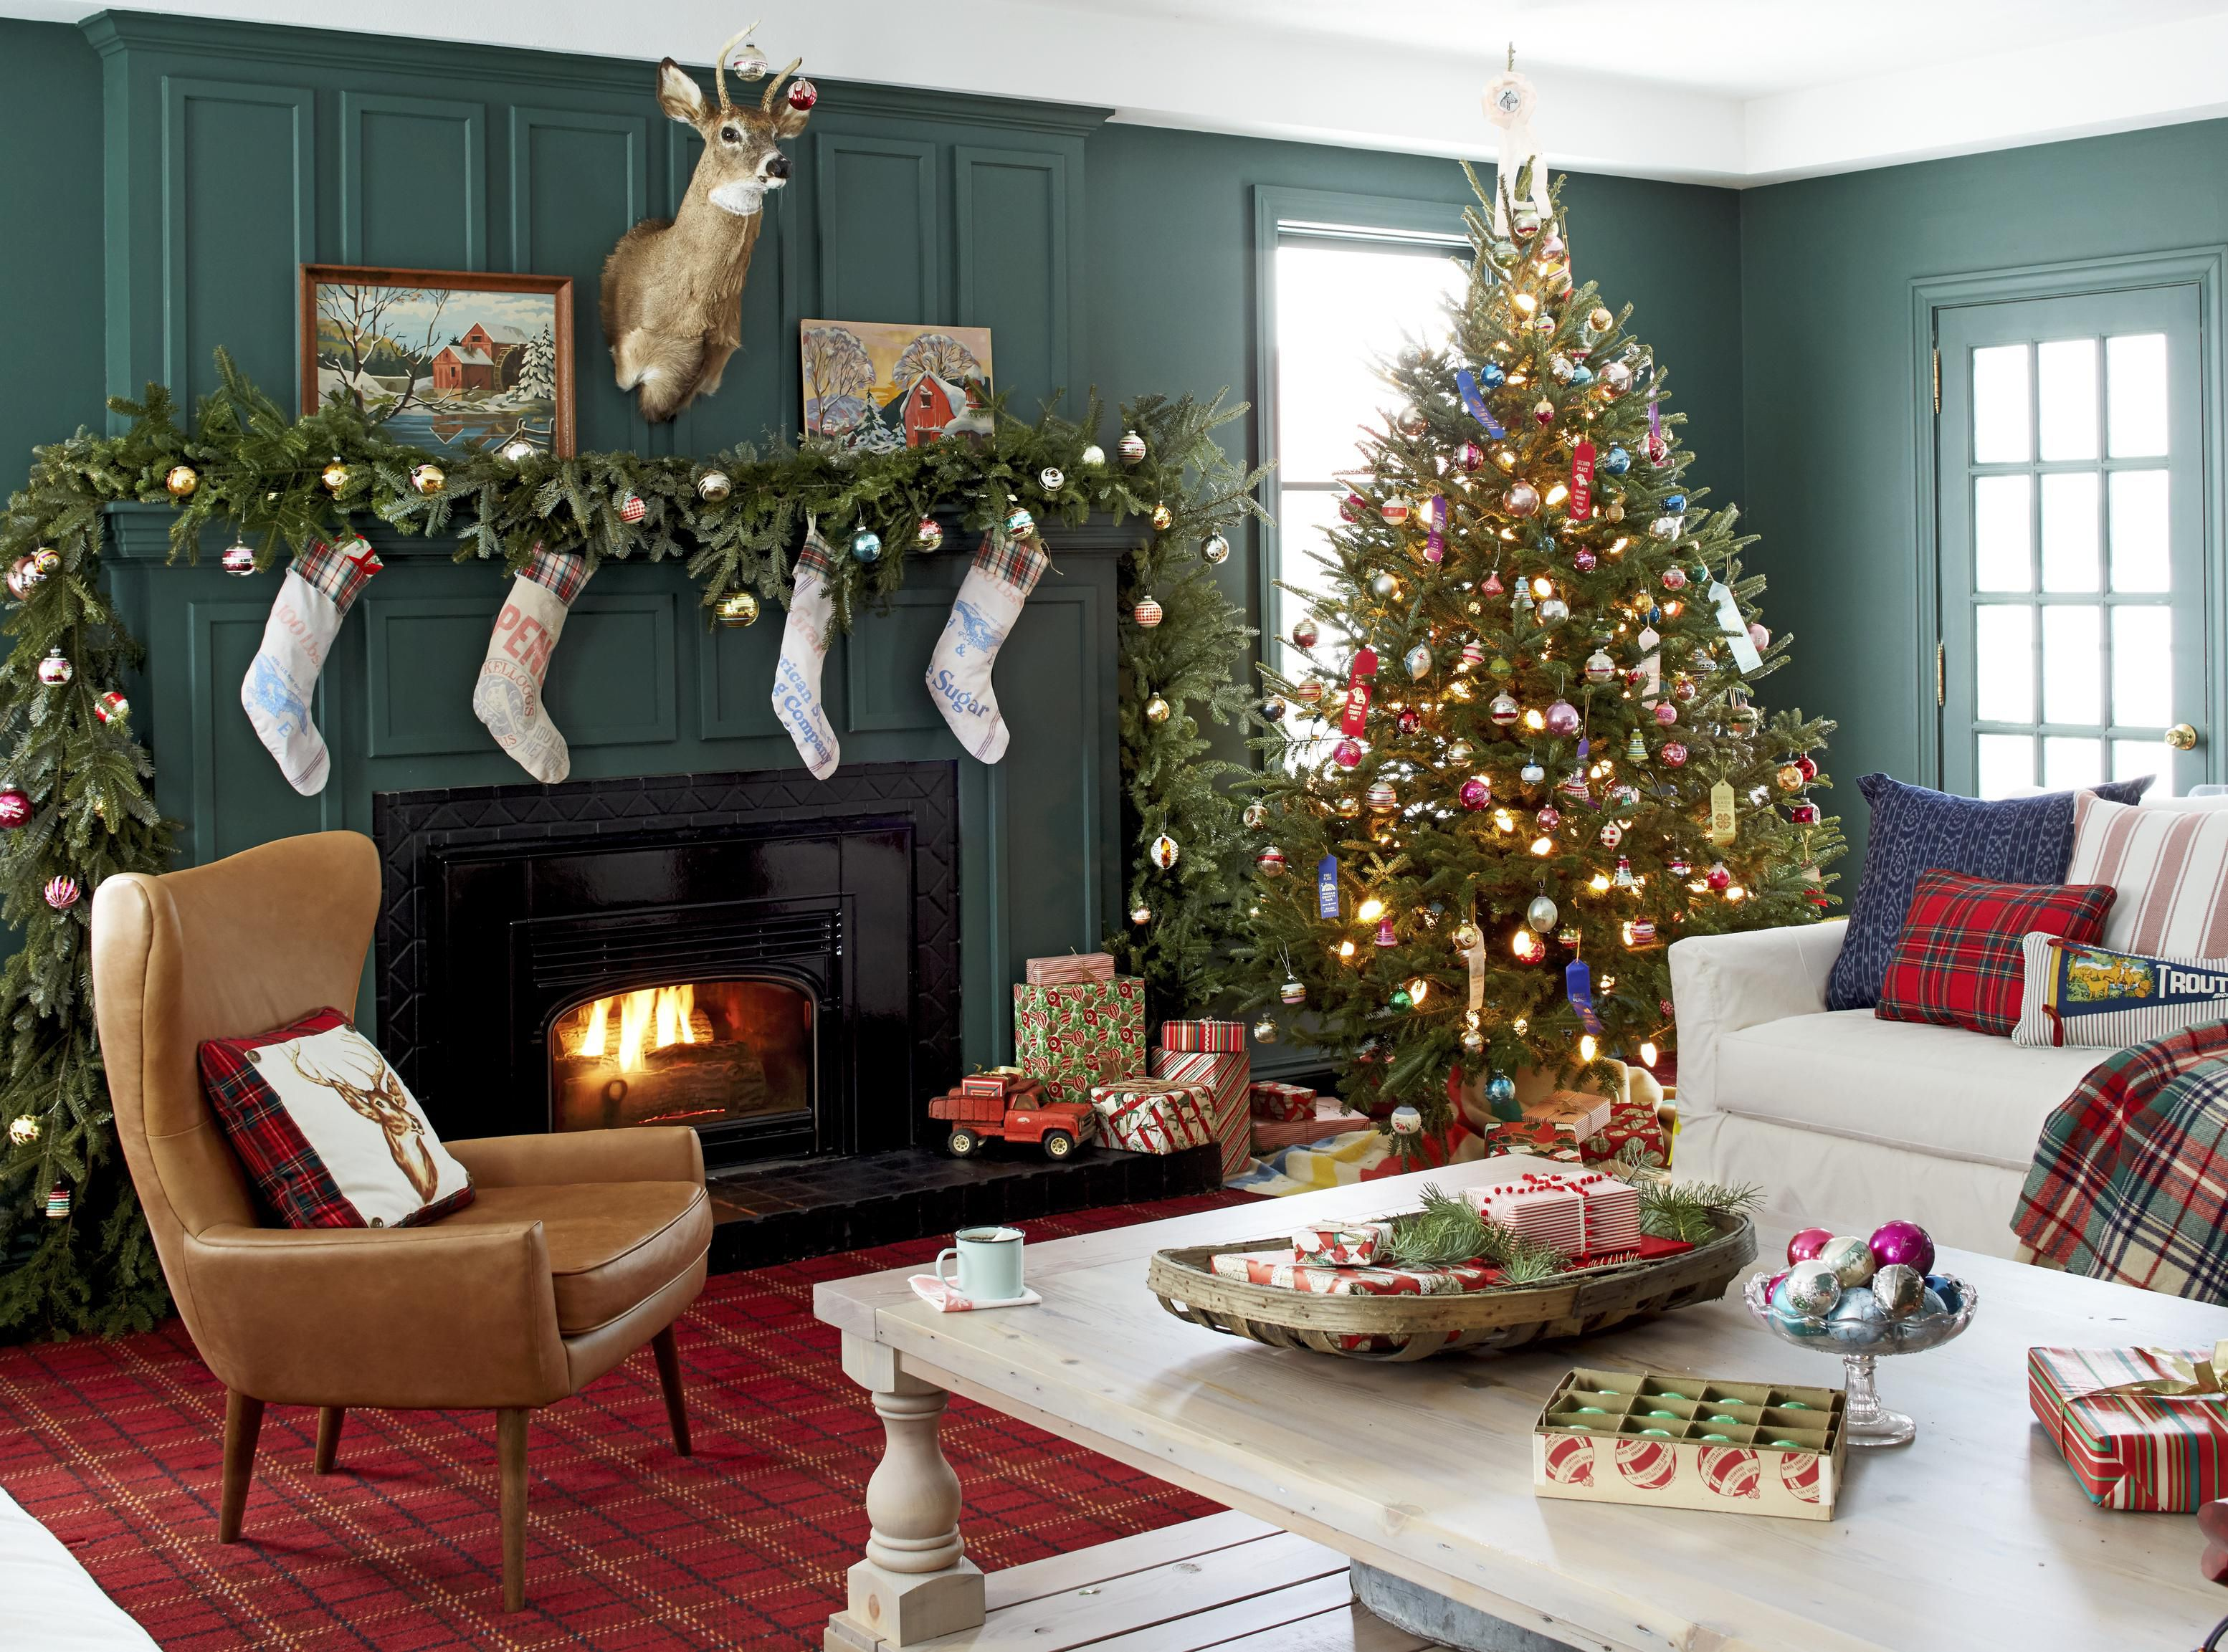 7 Christmas Living Room Decorating Ideas - How to Decorate a